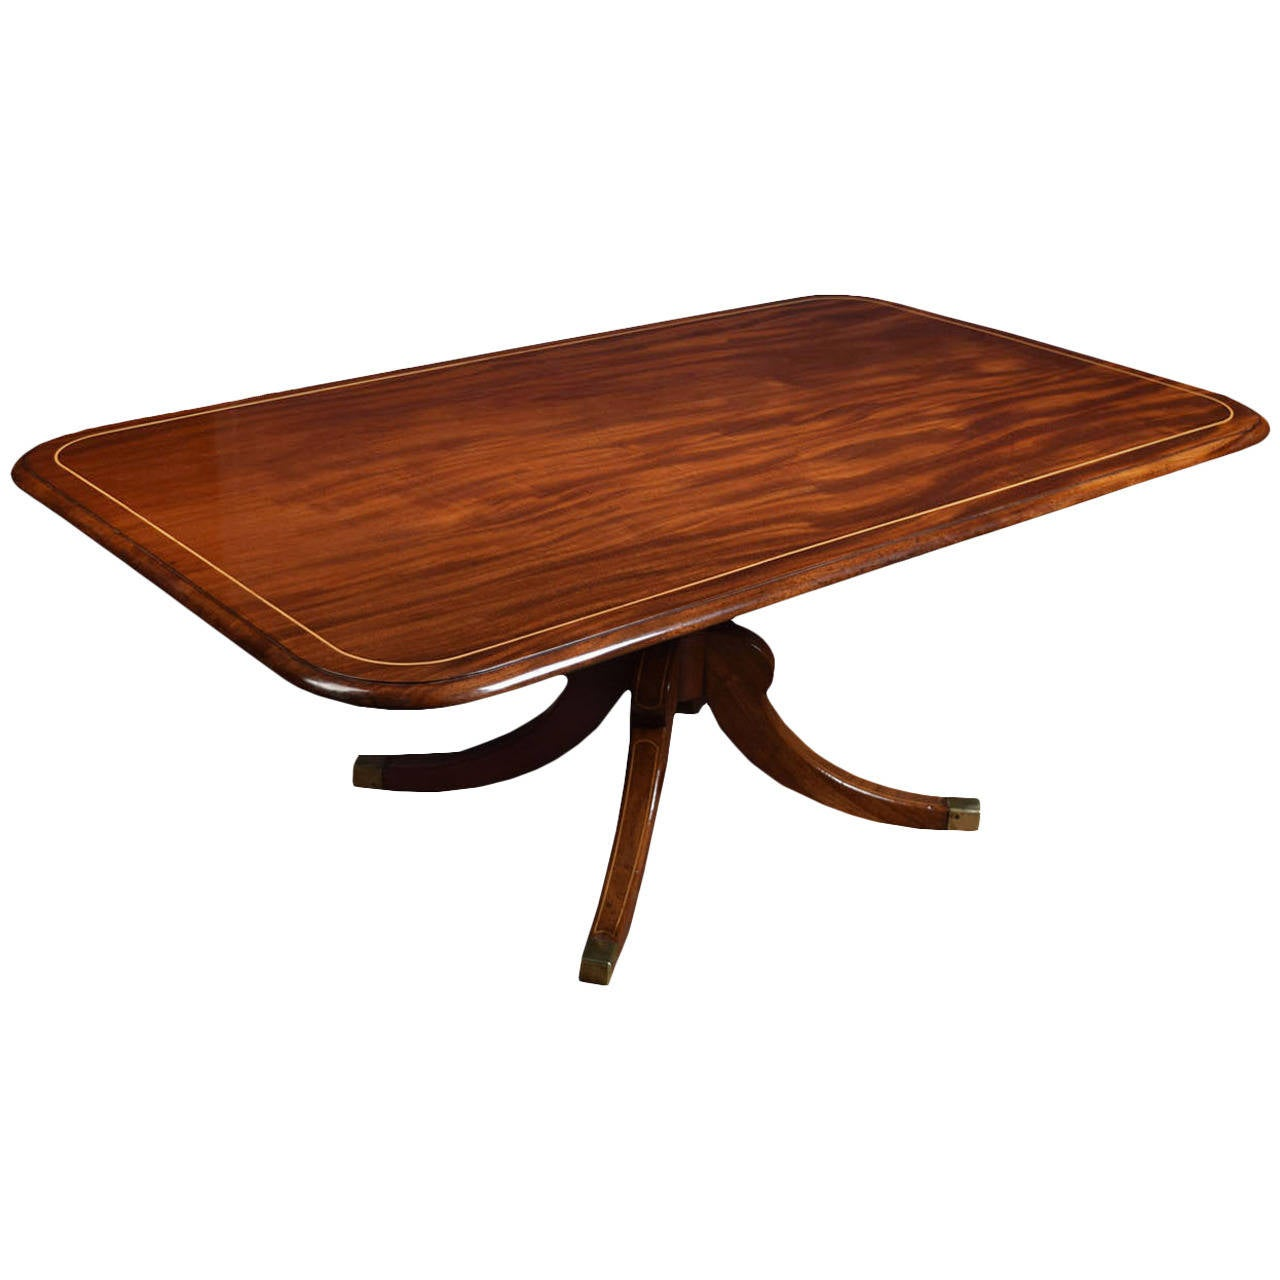 Georgian mahogany coffee table at 1stdibs for Coffee tables zara home